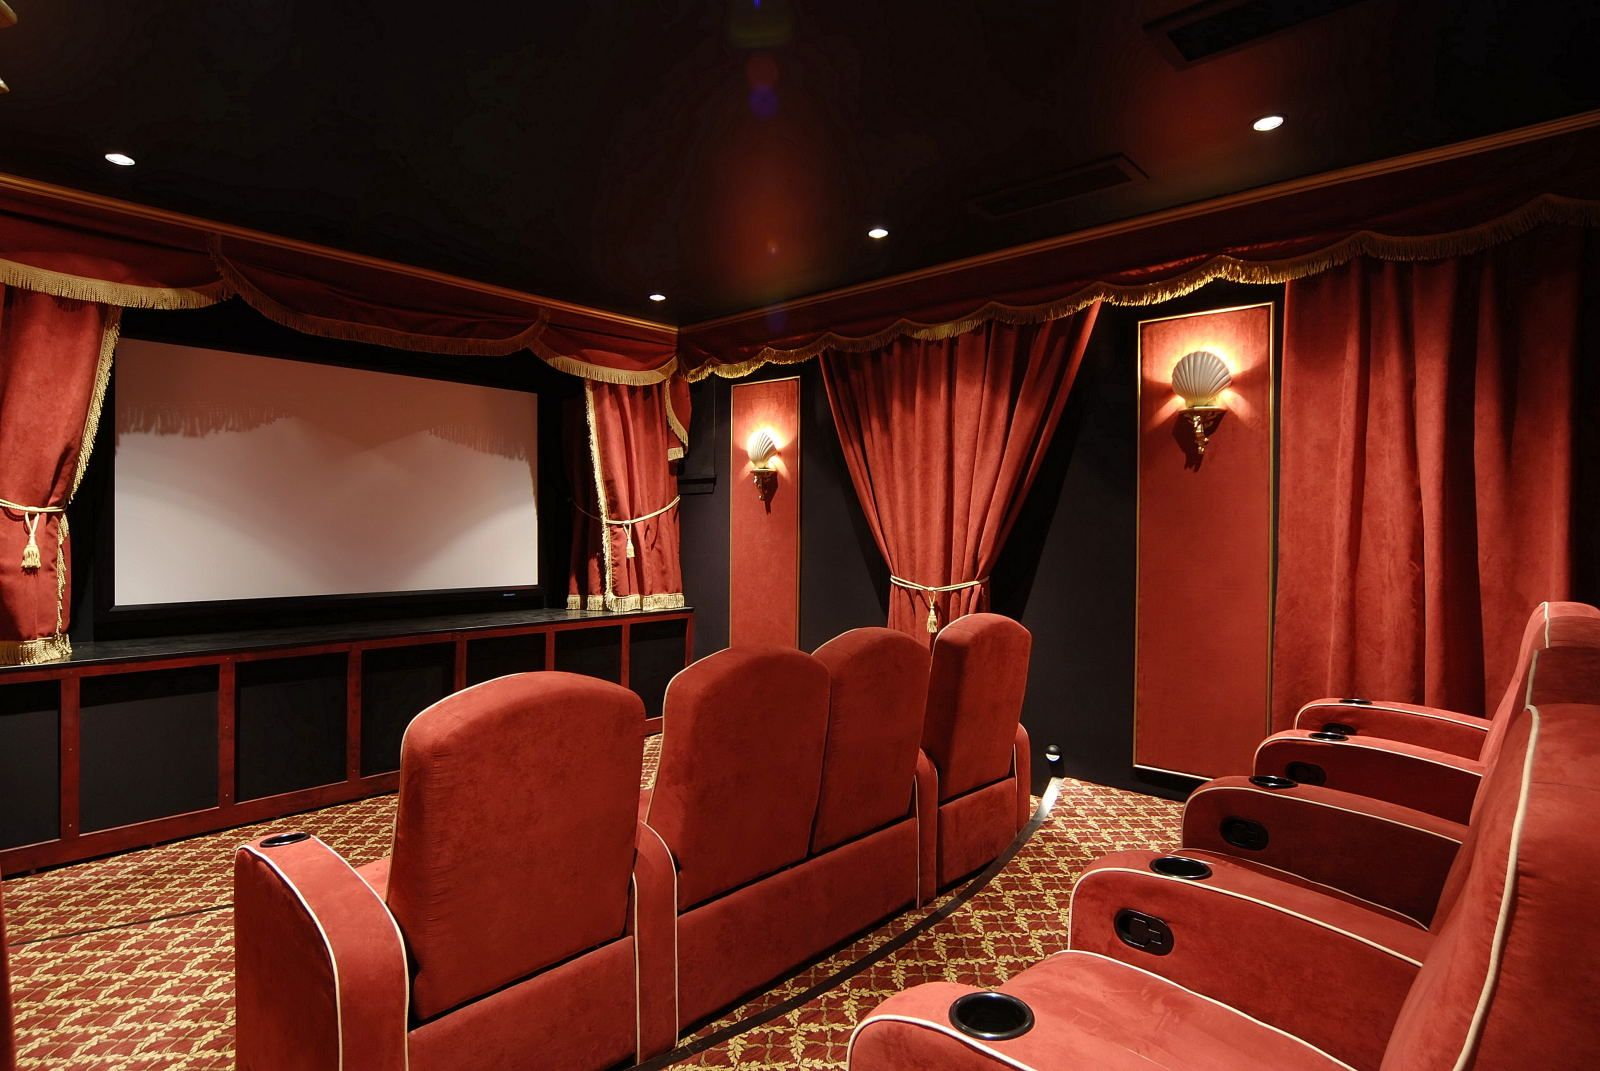 Wallpaper 7 Home Theater Wallpapers Home Theater Decor Home Theater Rooms Home Theater Seating